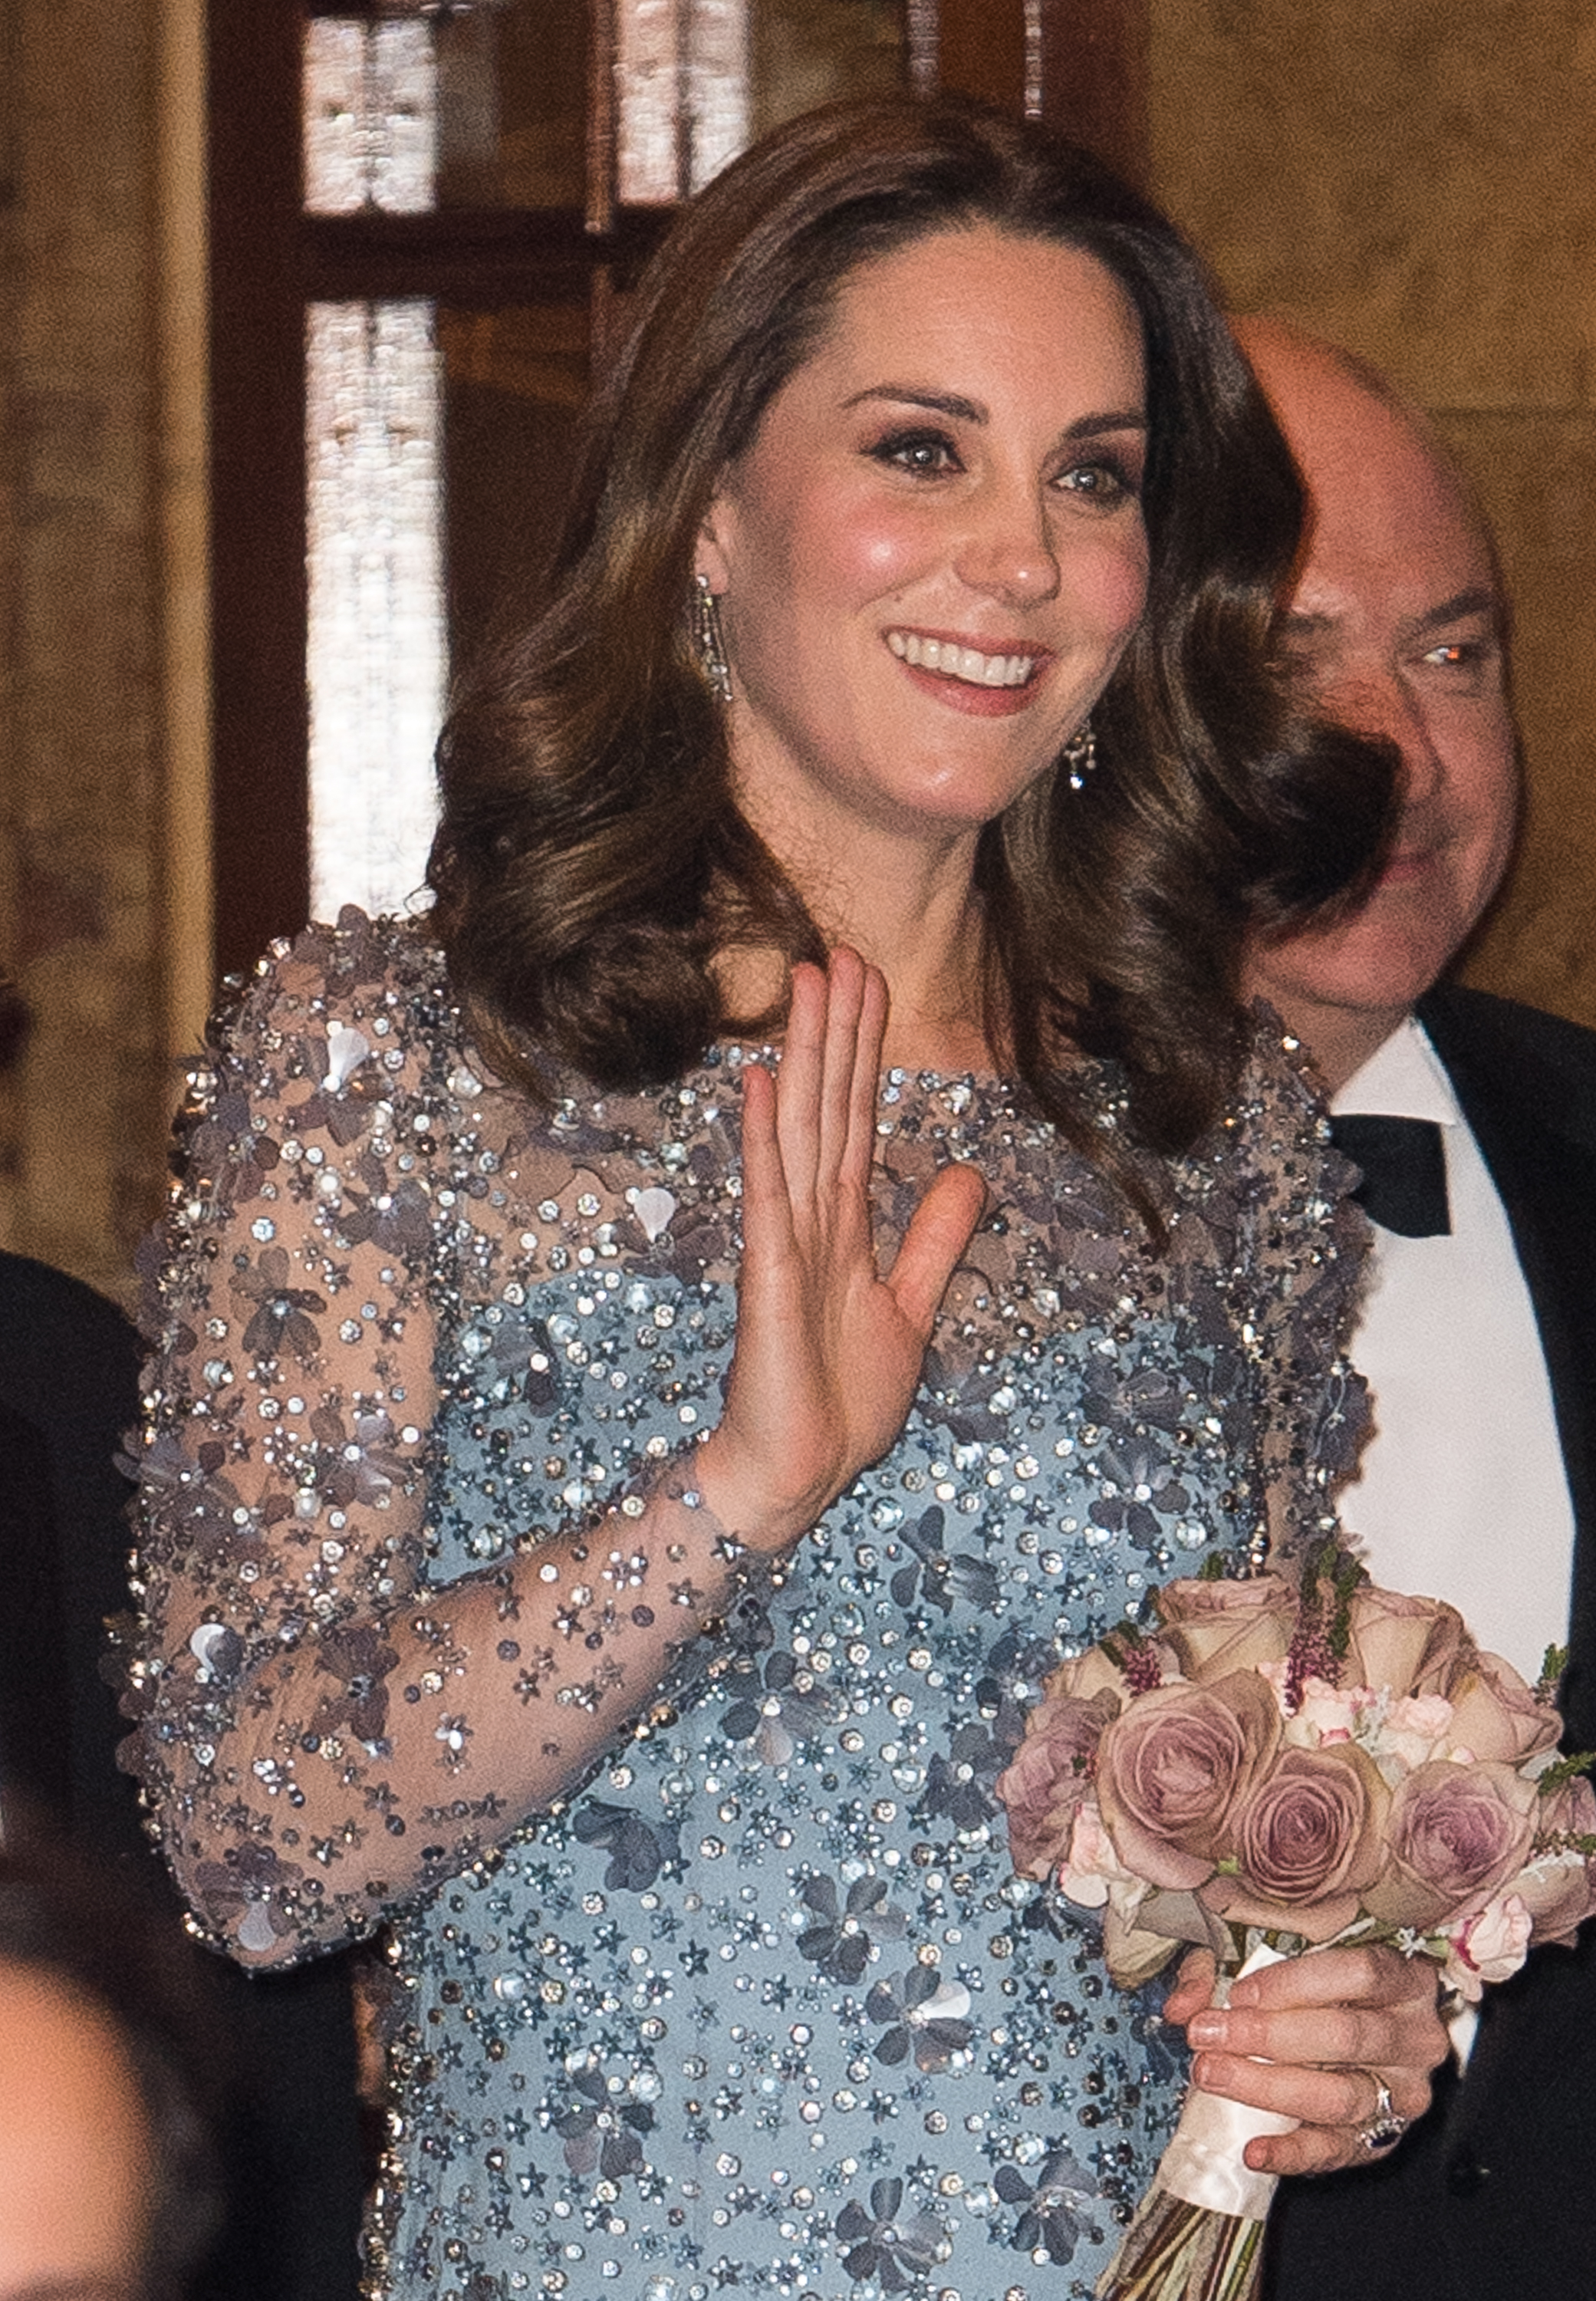 Kate-Middleton-Dazzles-In-Sparkling-Blue-Dress-As-She-Hits-The-Theater-With-Prince-William